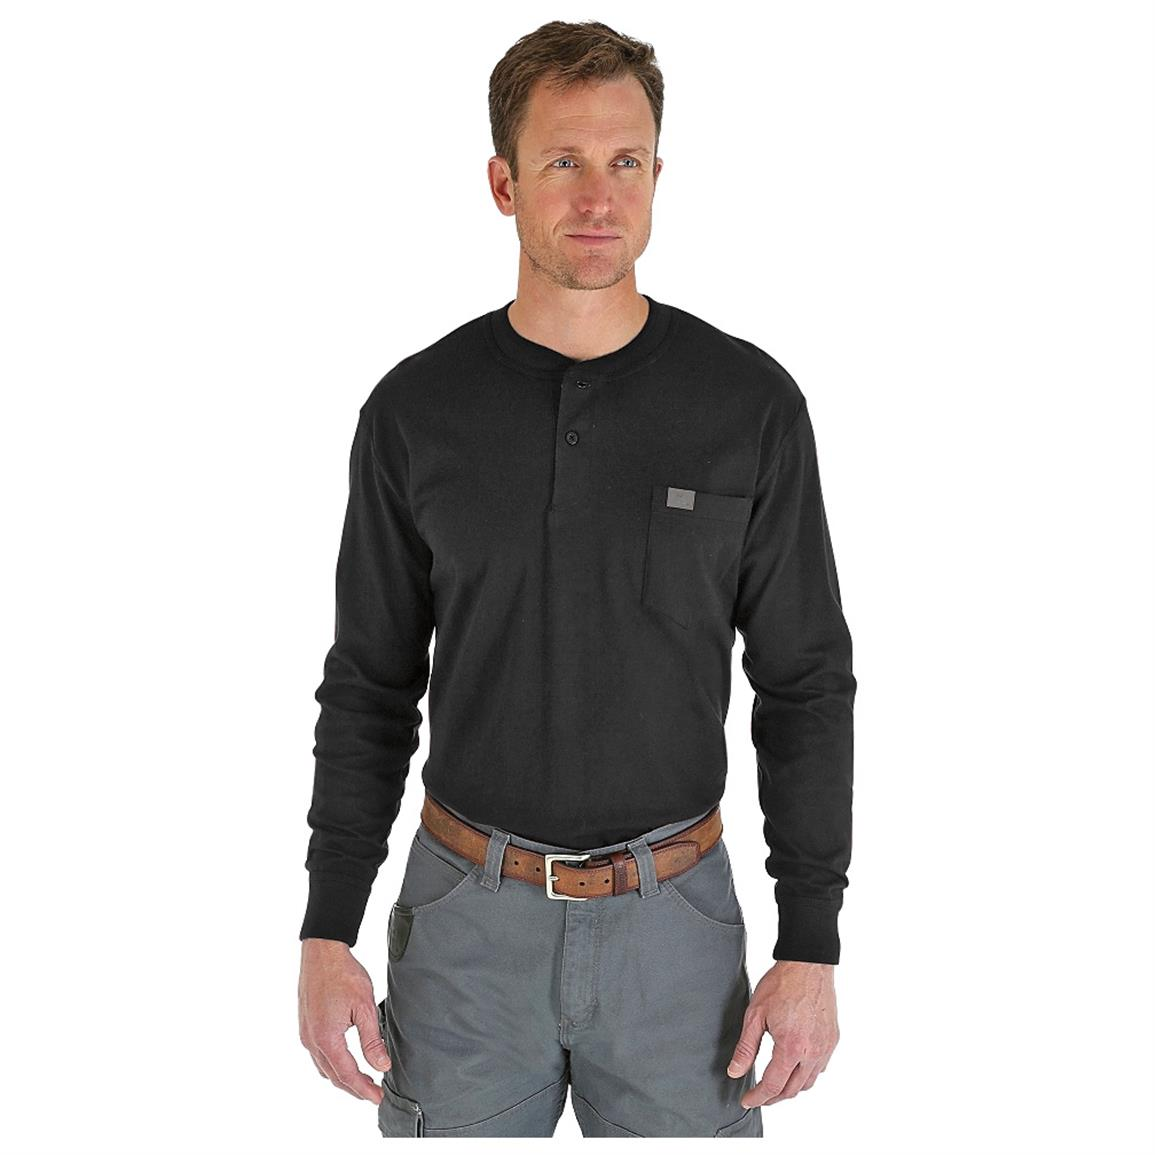 Wrangler RIGGS Workwear Long Sleeve Henley Shirt, Black